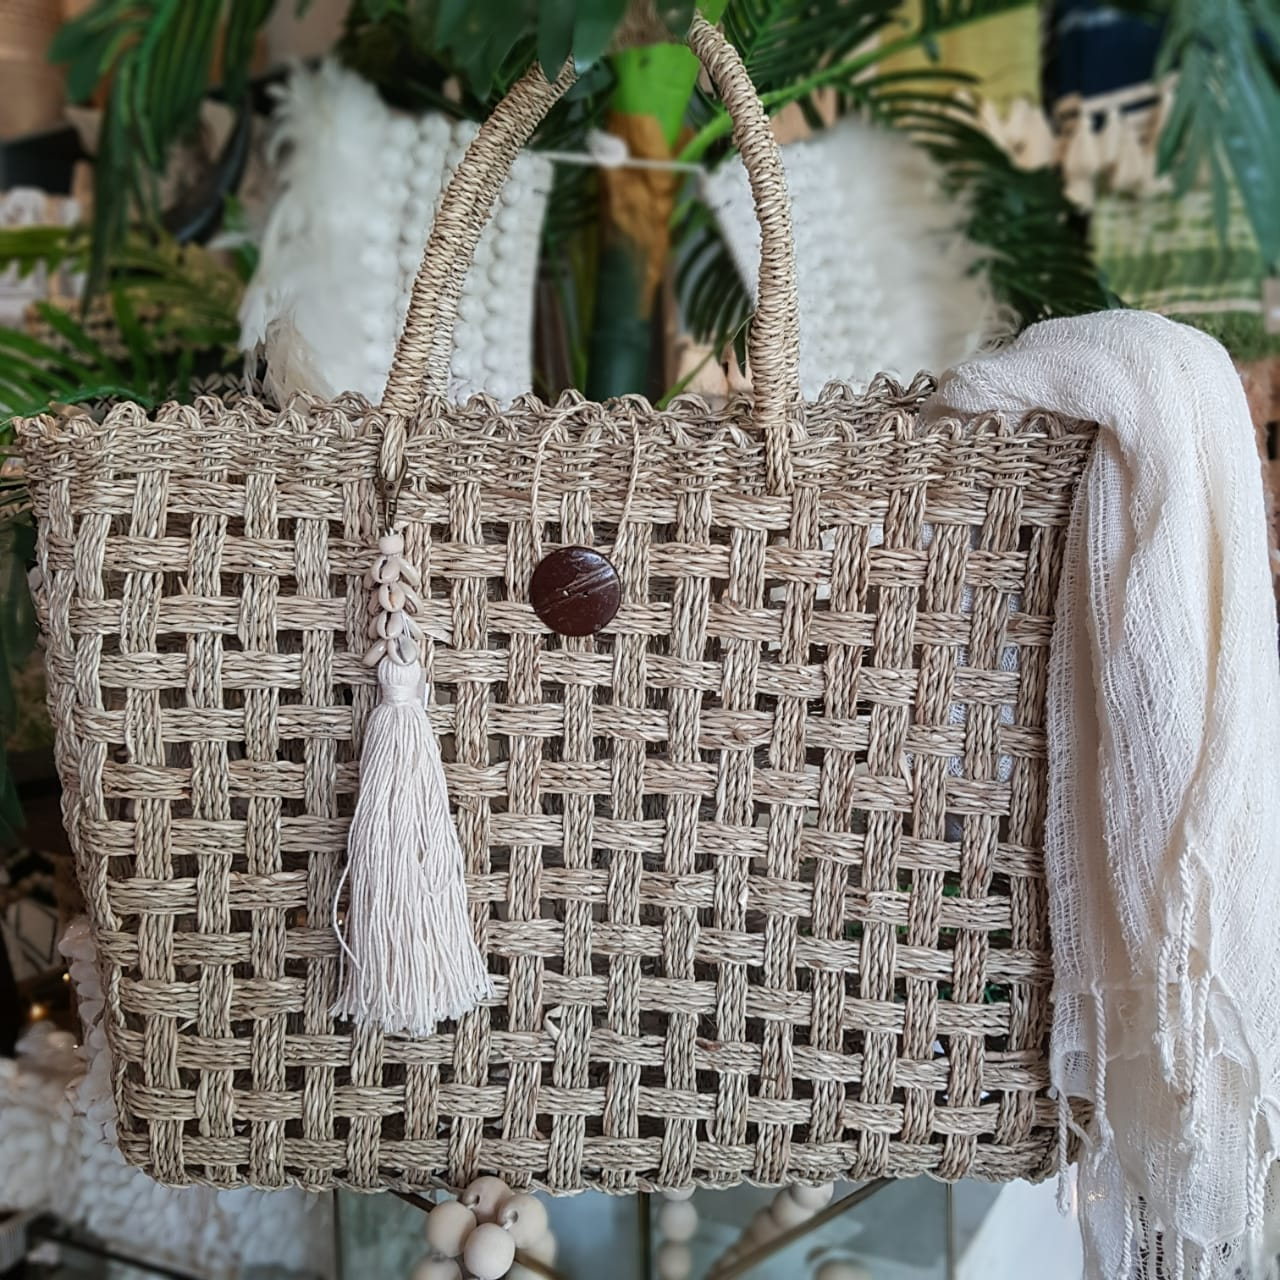 Pattern Bali Coconut Purse Natural Color White